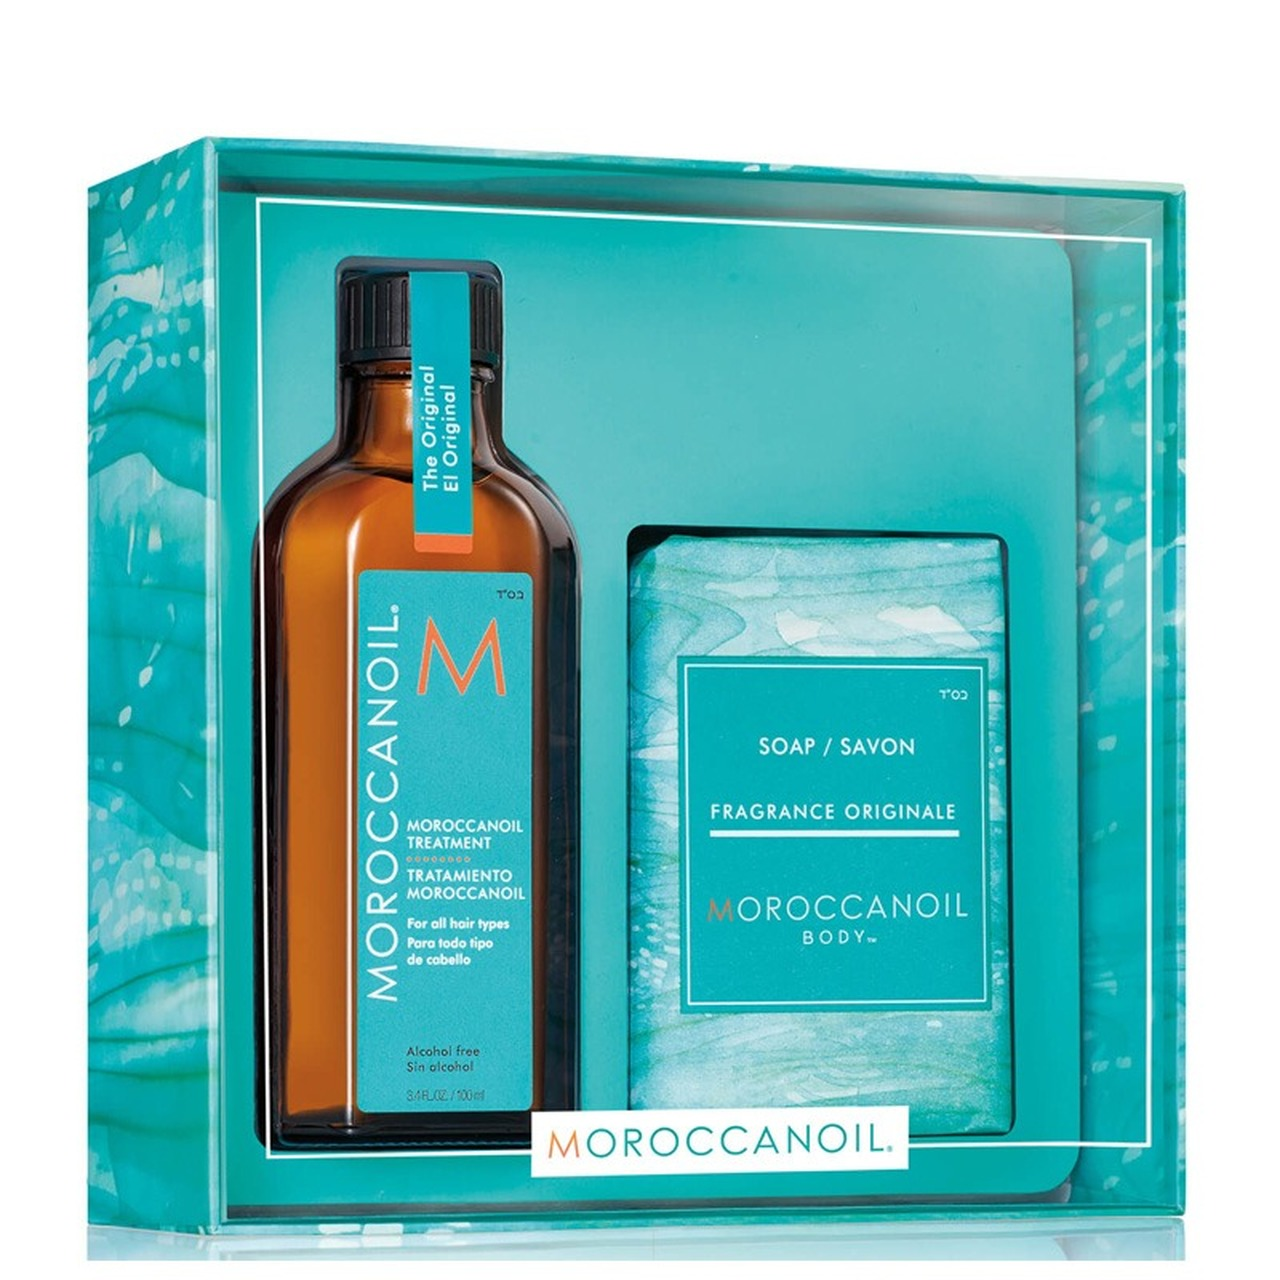 Moroccanoil Treatment Oil 100ml with FREE Soap Christmas Gifts at Hugh Campbell Limerick Hair Salons